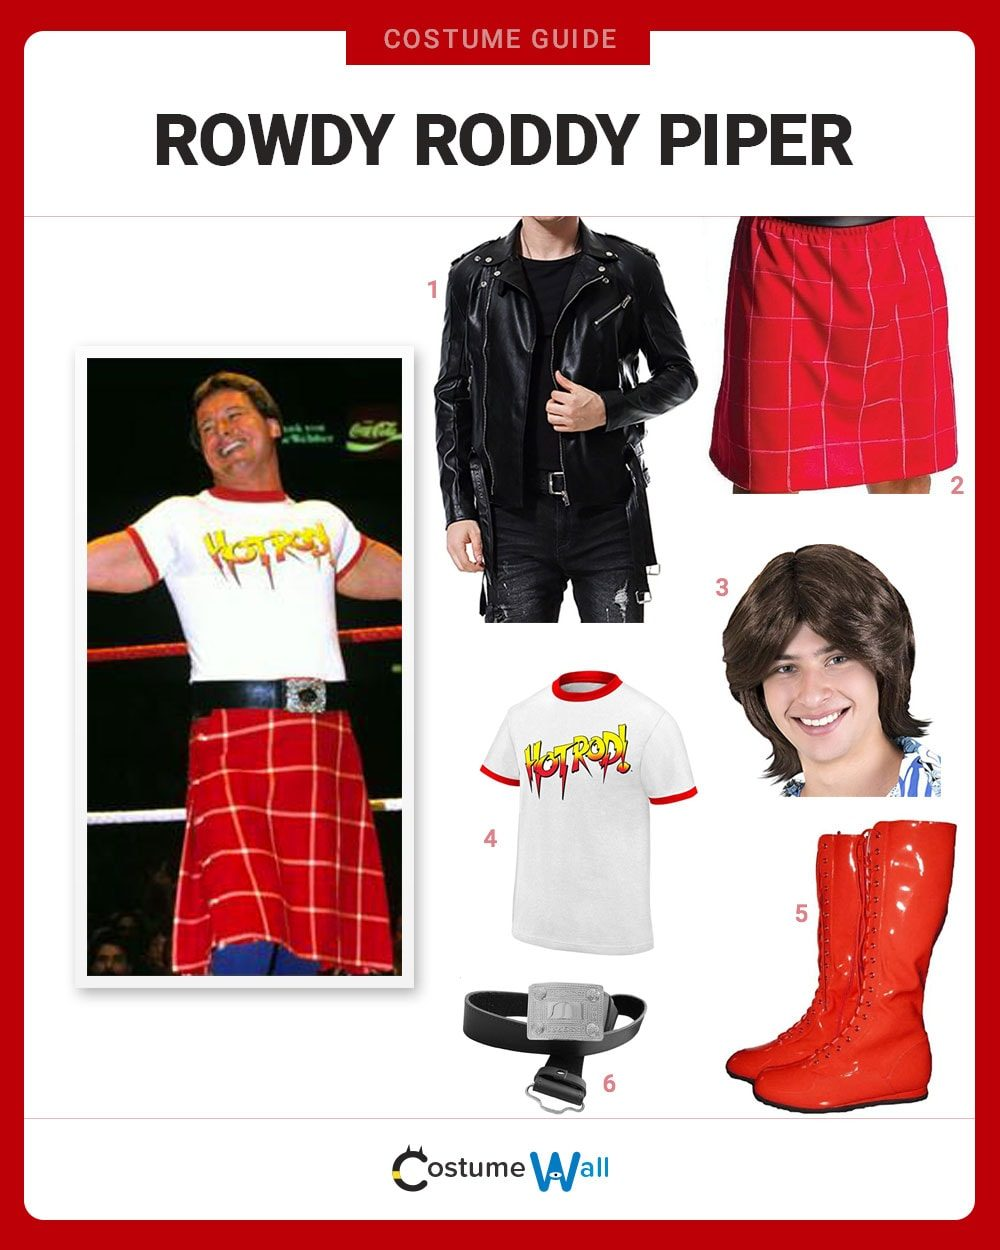 Rowdy Roddy Piper Costume Guide